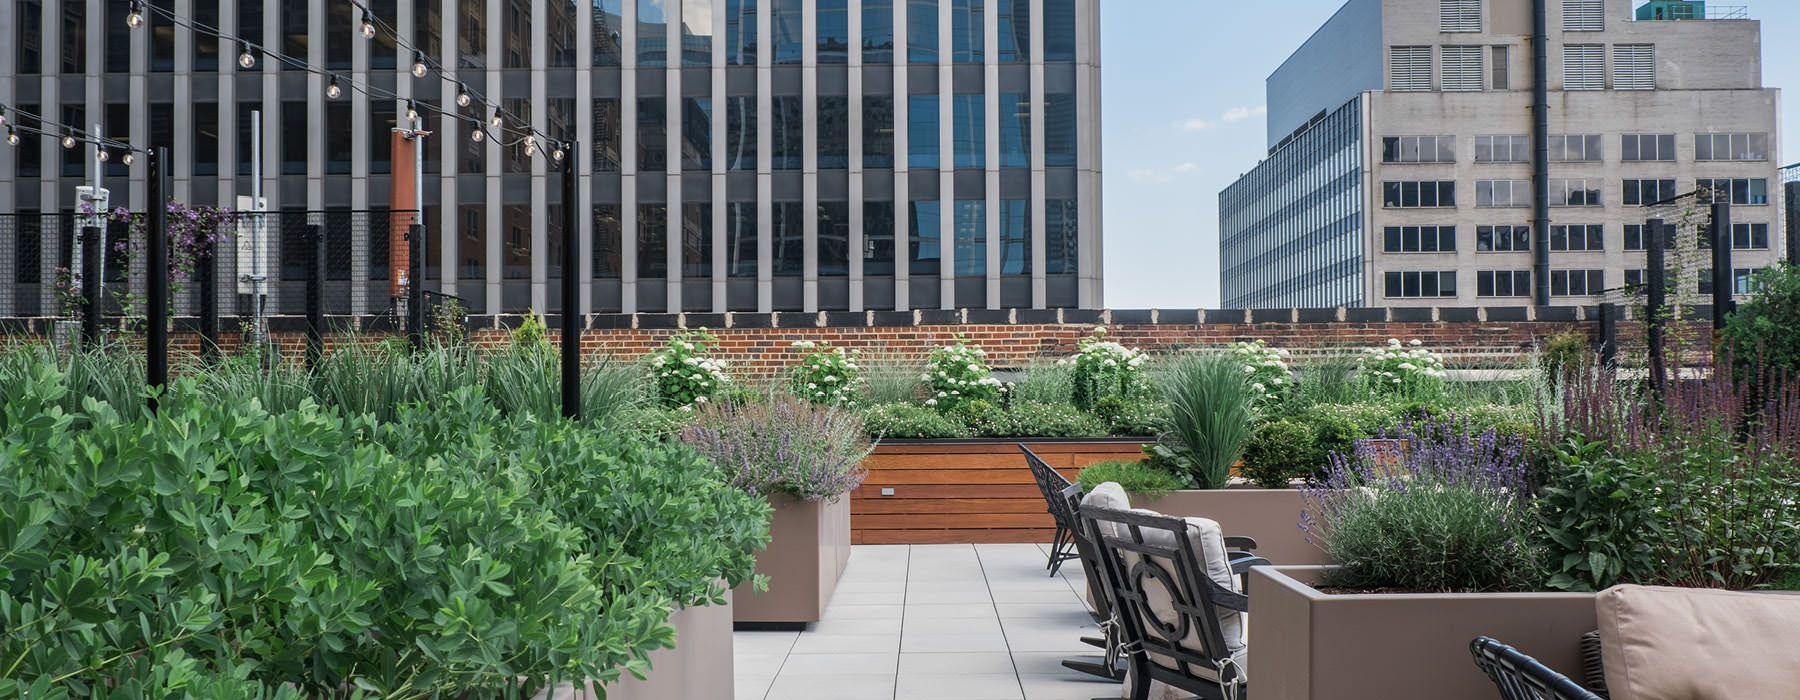 planters filled with various flowers decorate rooftop terrace